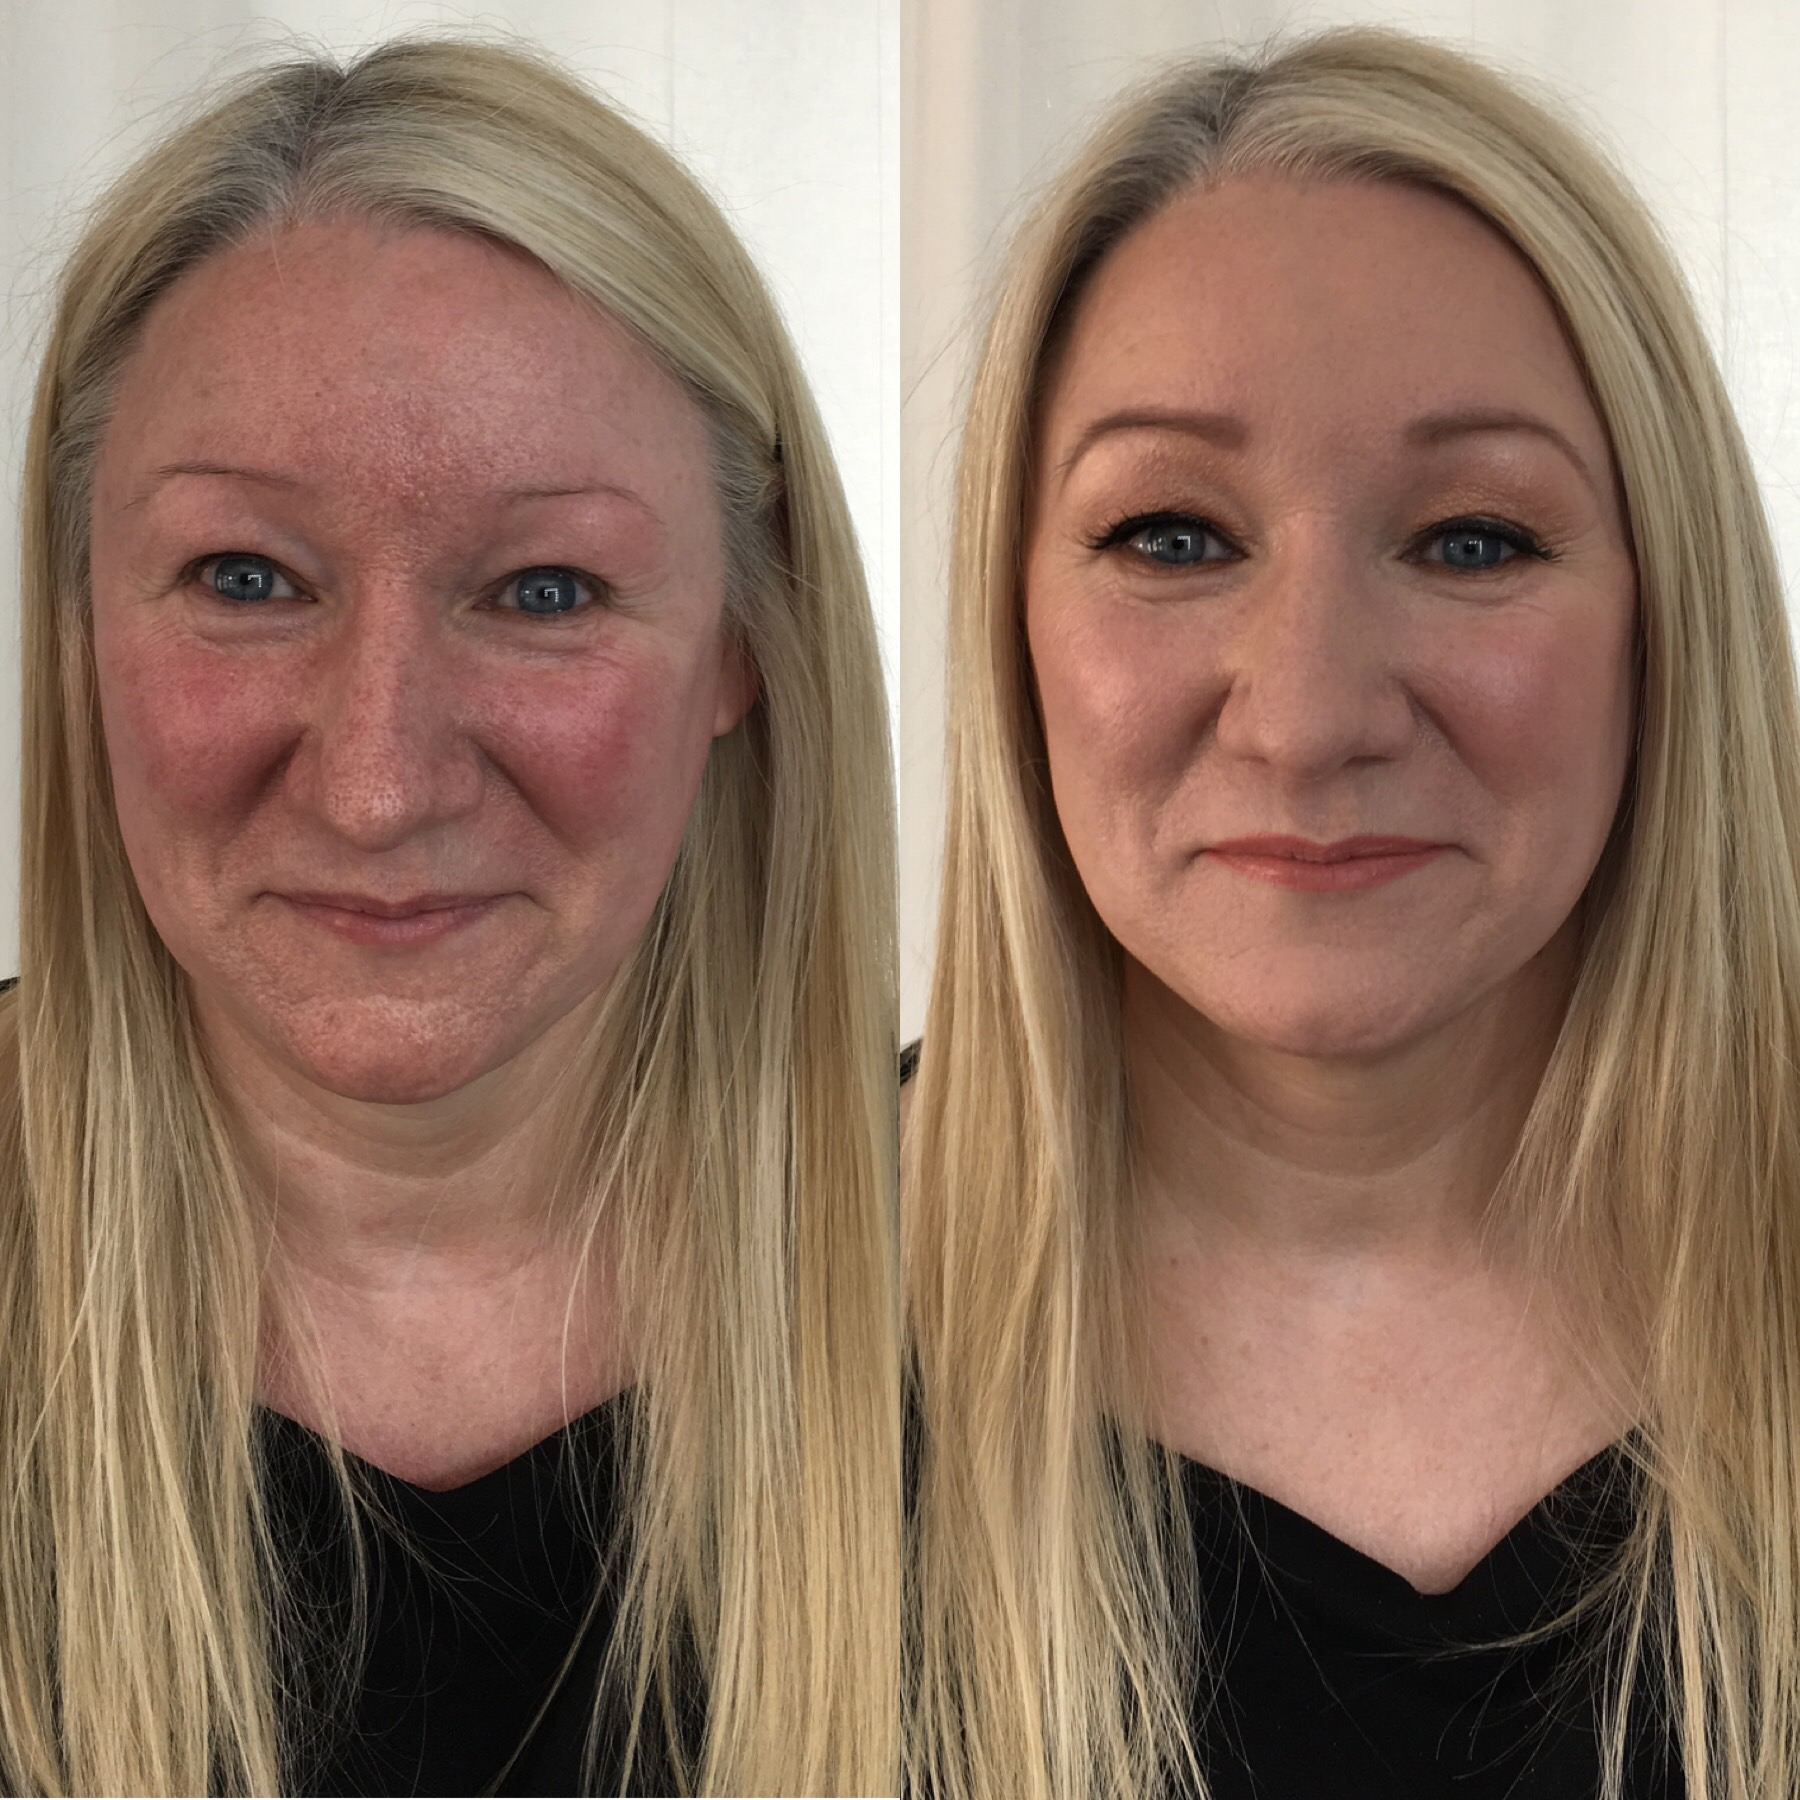 Lisa visited me for a makeup lesson. I showed her easy step by step ways to enhance her face, without looking overly made-up.